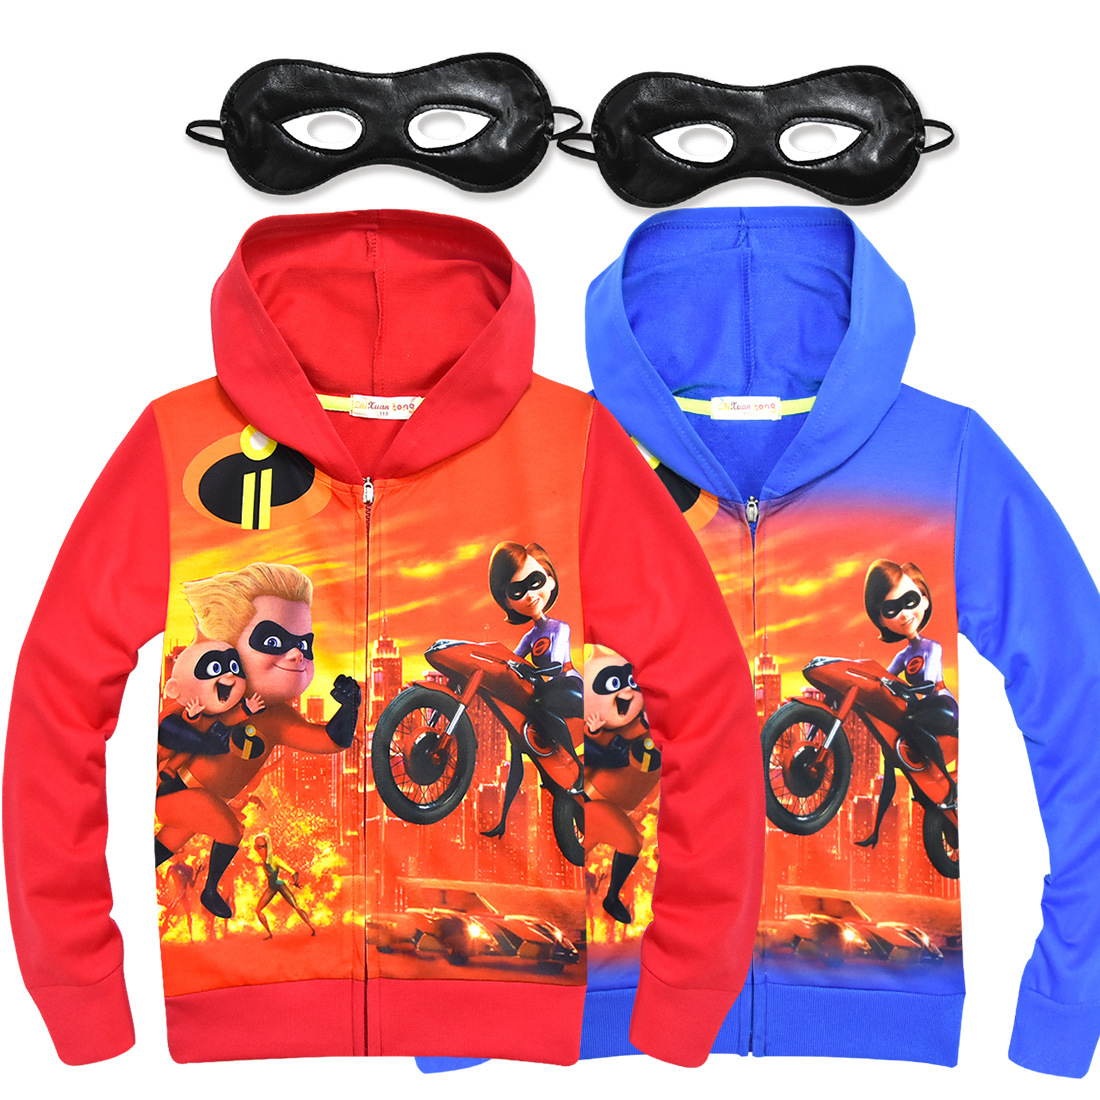 Kids The Incredibles 2 Cartoon Hoodies Sweatshirt Spring Autumn Hoodie Outwear Coat Top Children's Halloween Cosplay Costume